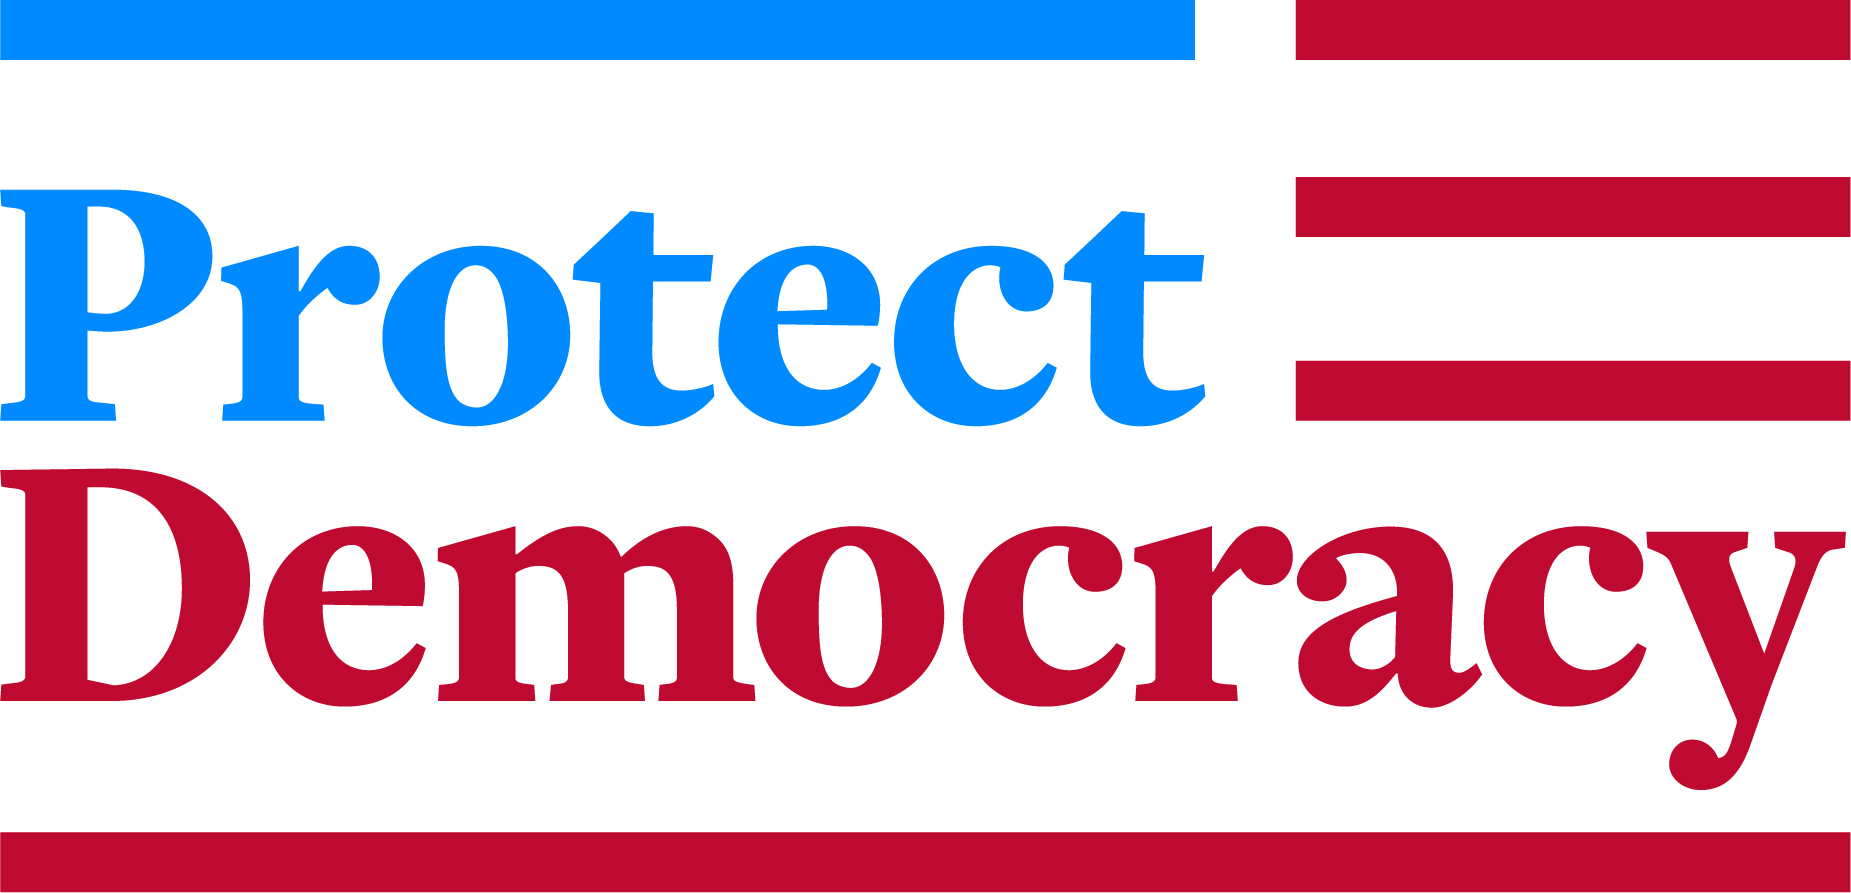 Our organization - Protect Democracy is a nonpartisan nonprofit committed to preventing our democracy from declining into a more authoritarian form of government.